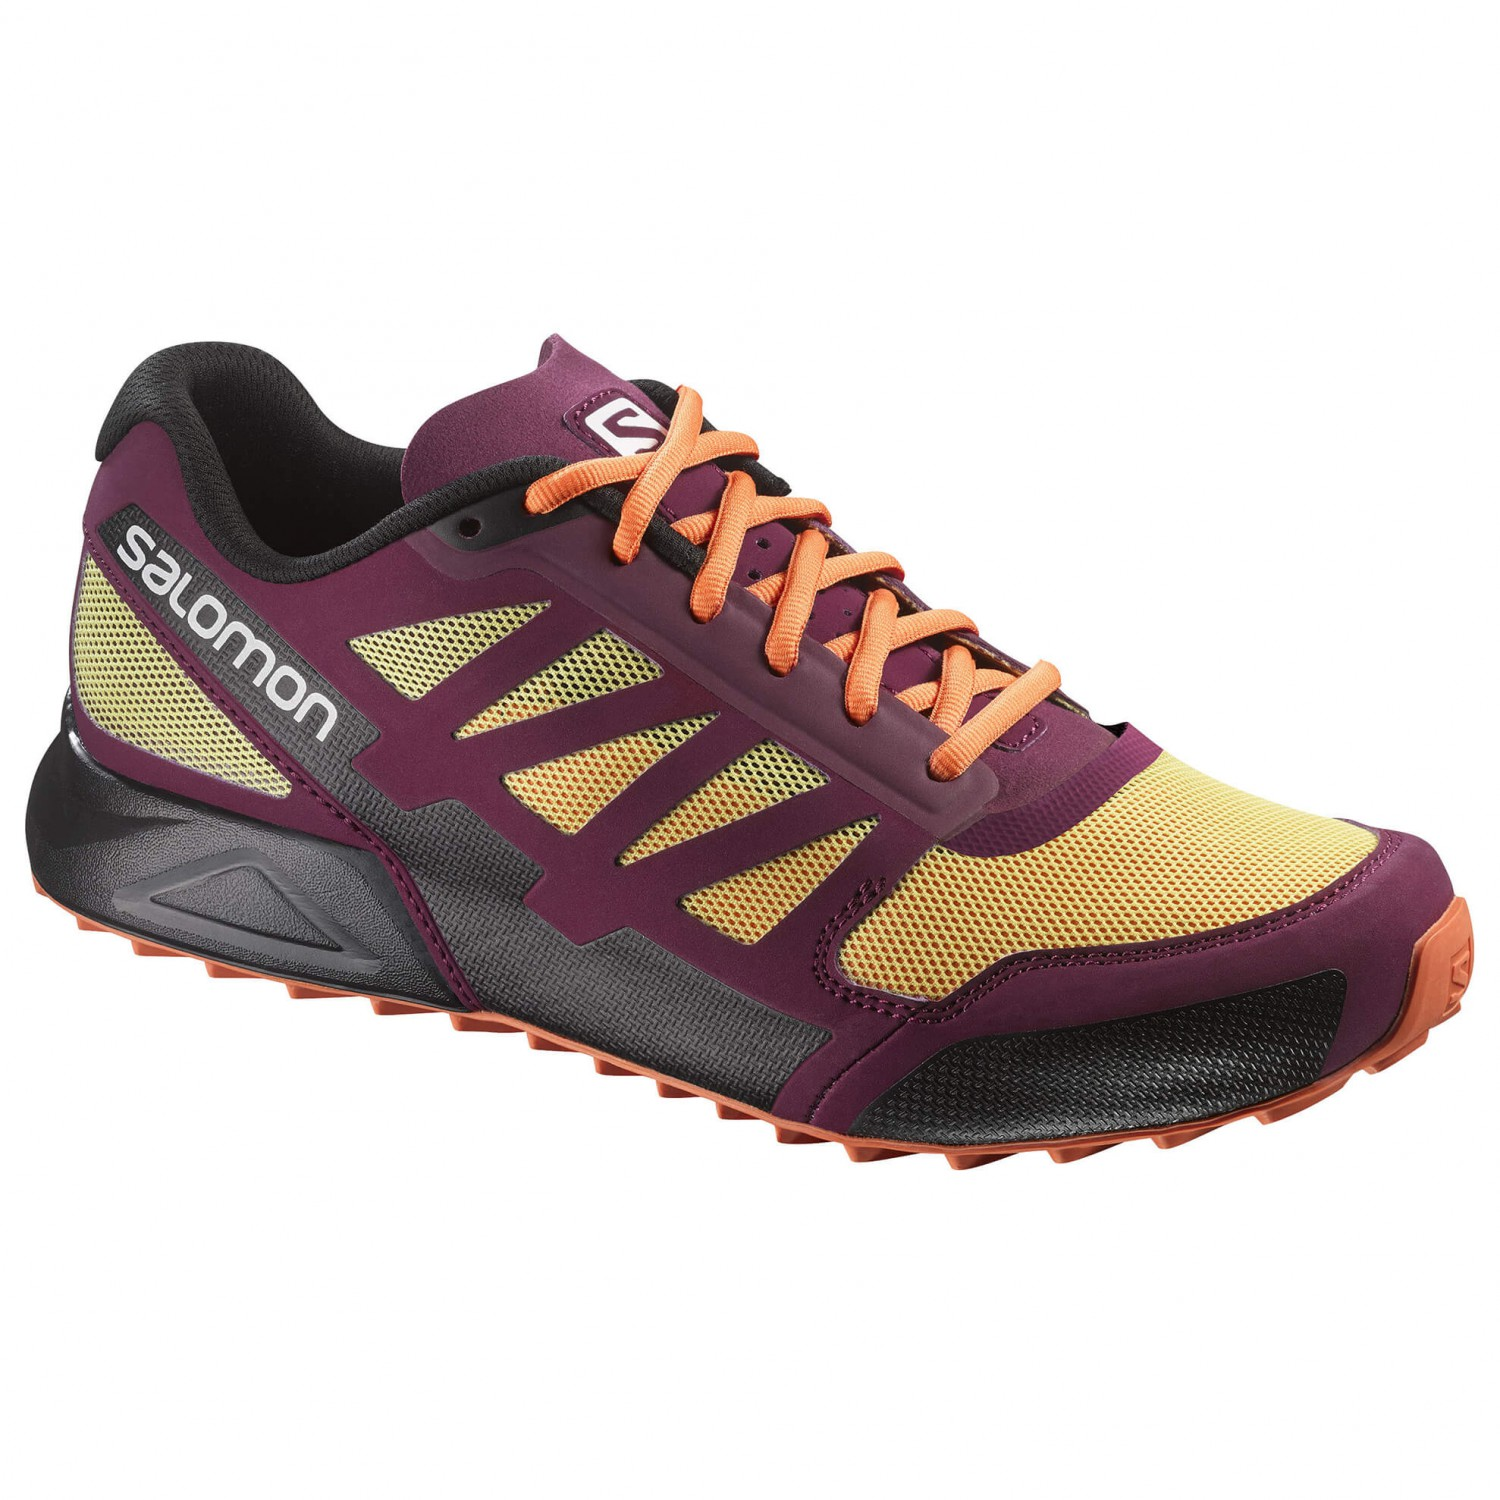 Salomon Buy Online Cross eu Bergfreunde Sneakers Women's City Aero Ba6qwa1